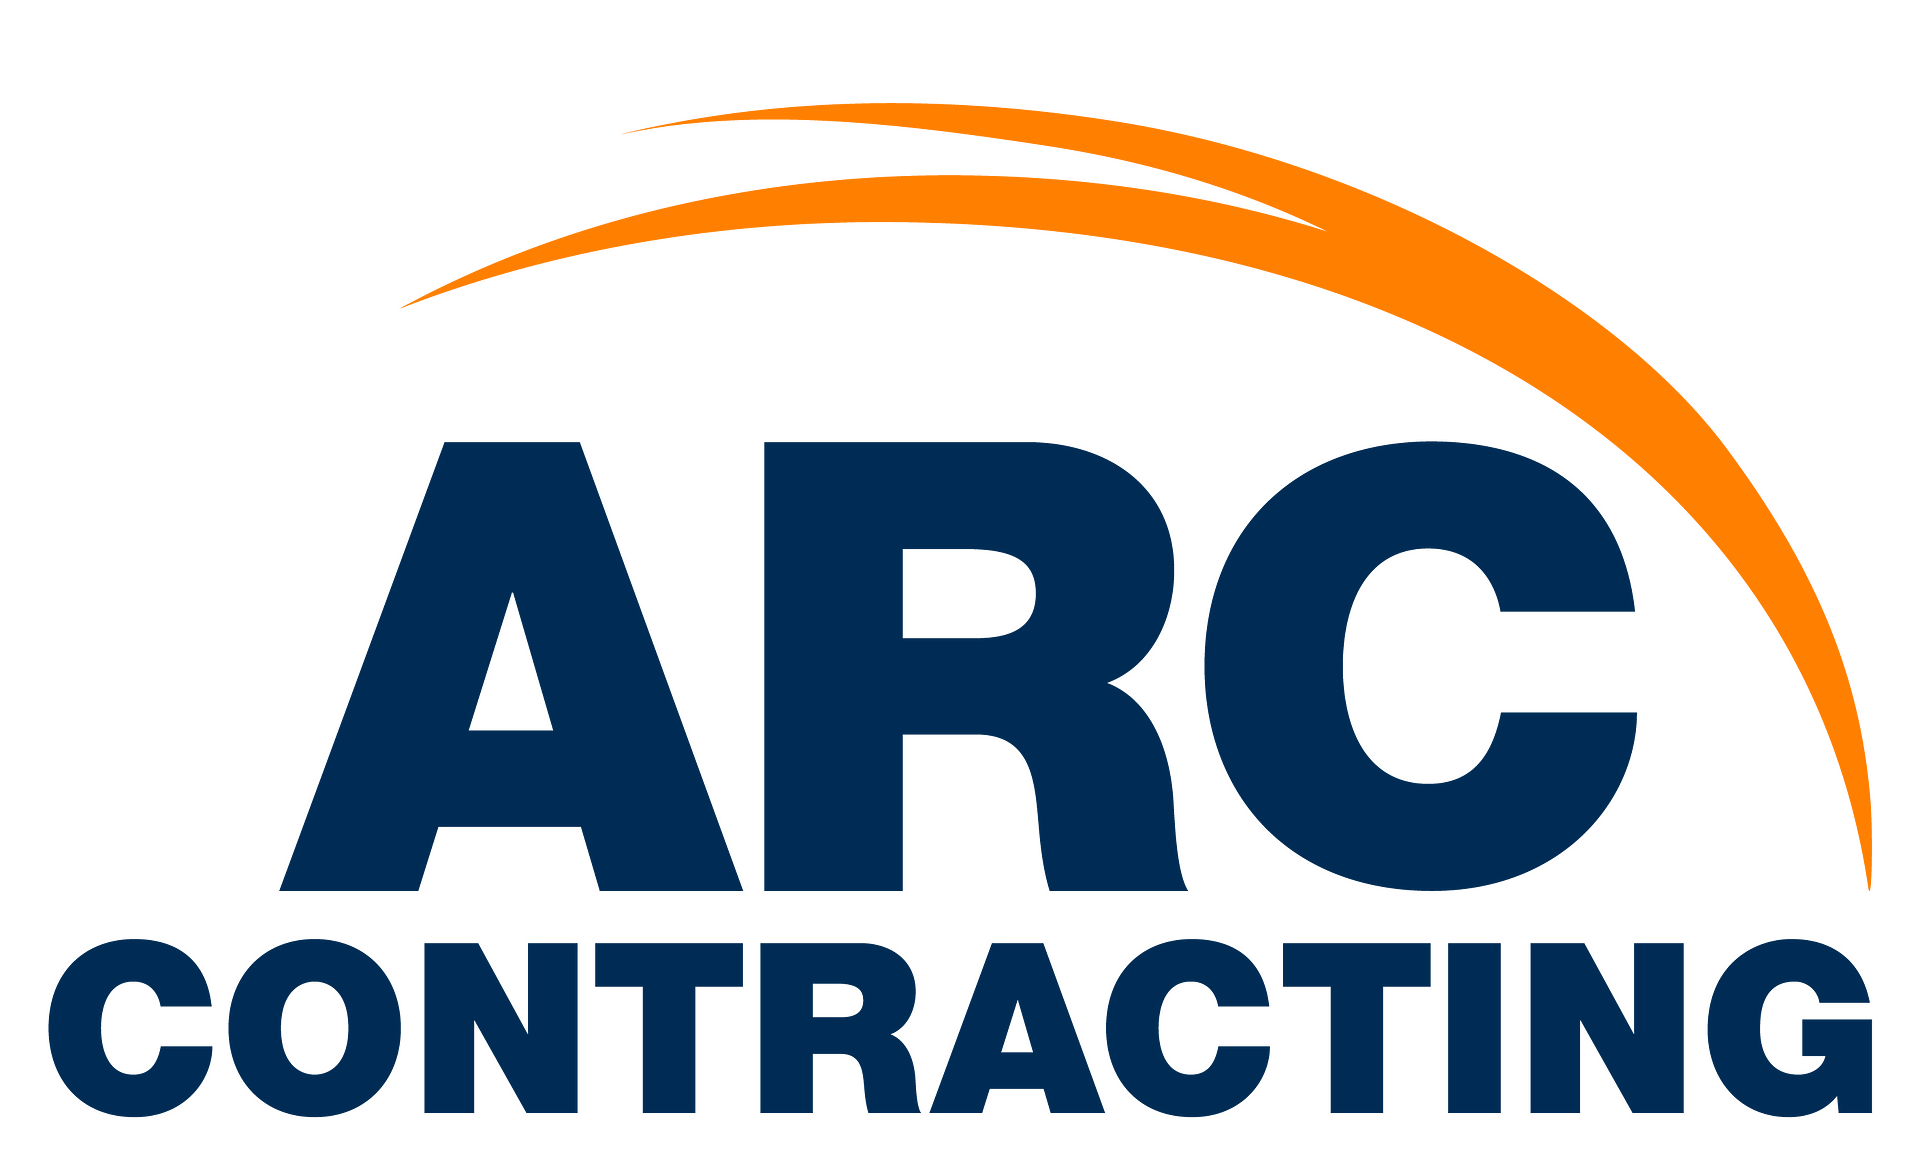 ARC Contracting